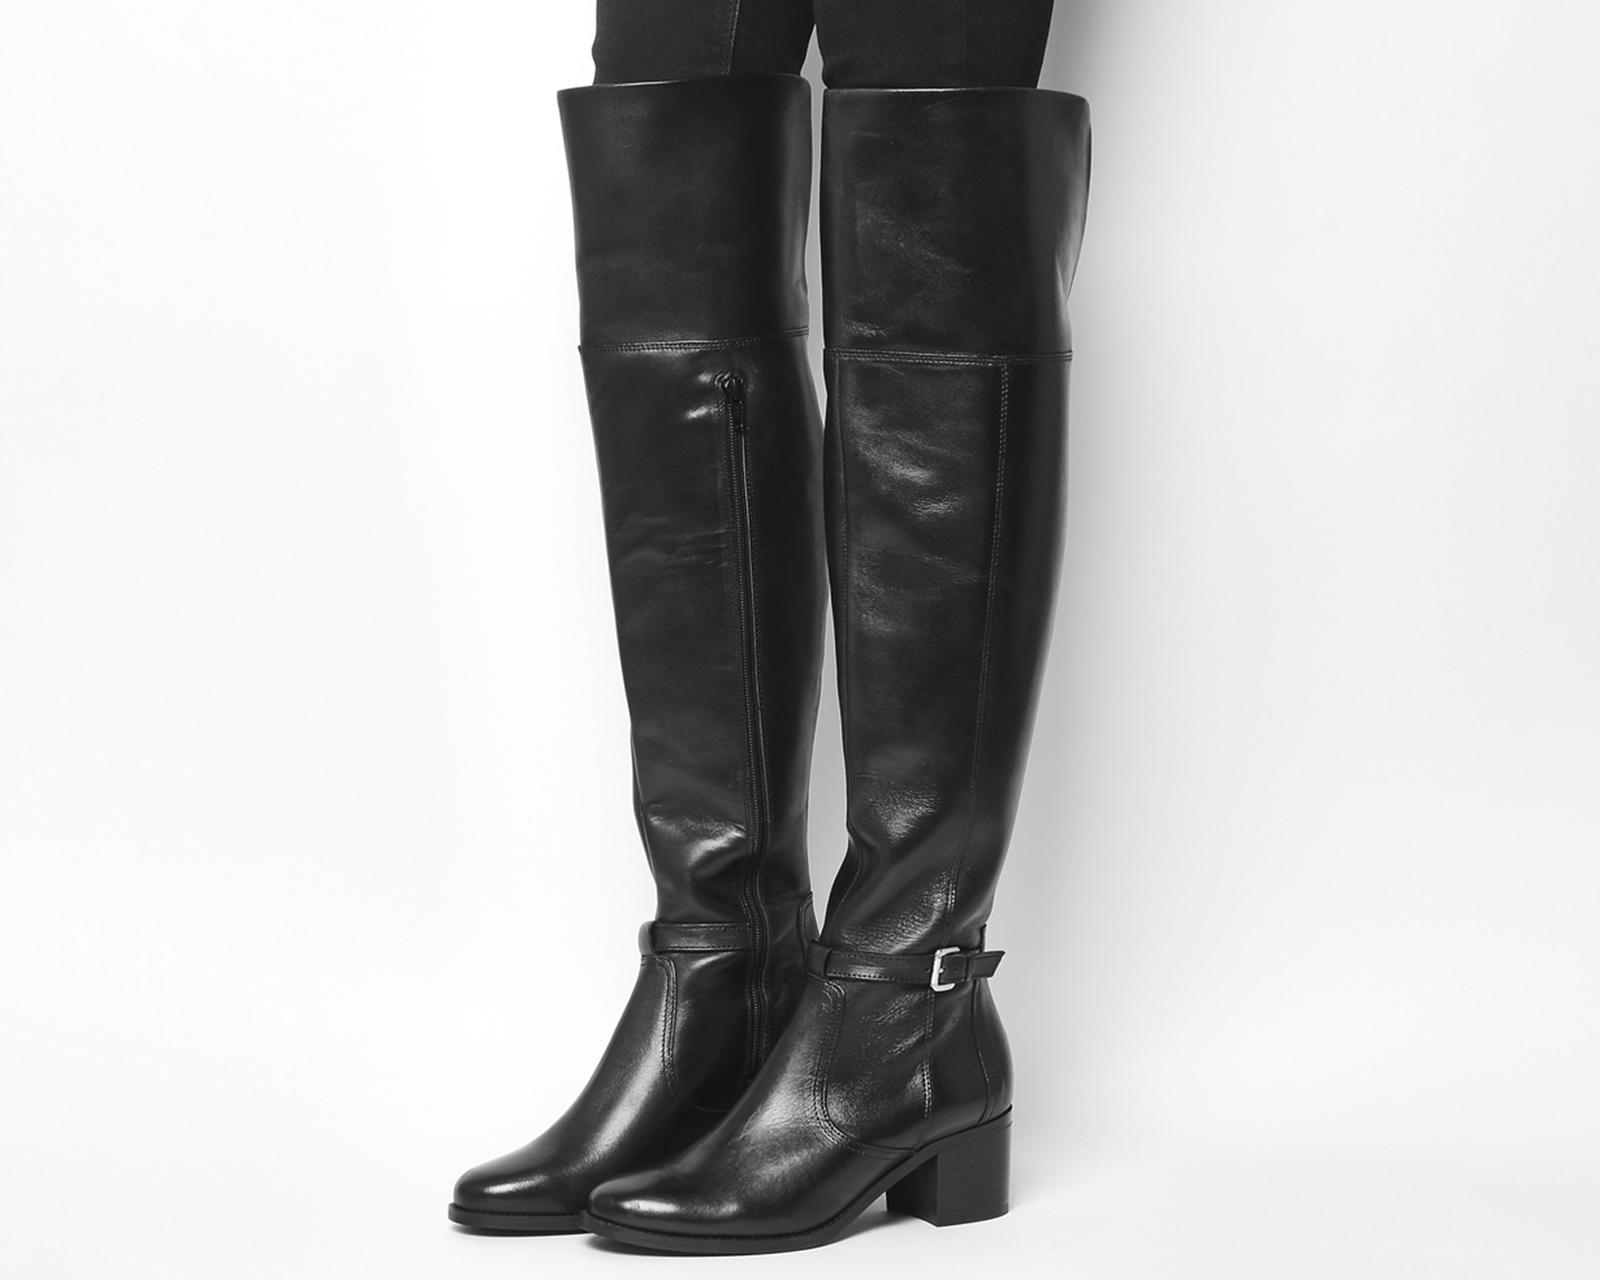 5bad55e9d14 Sentinel Womens Office Kacey Over The Knee Riding Boots Black Leather Boots